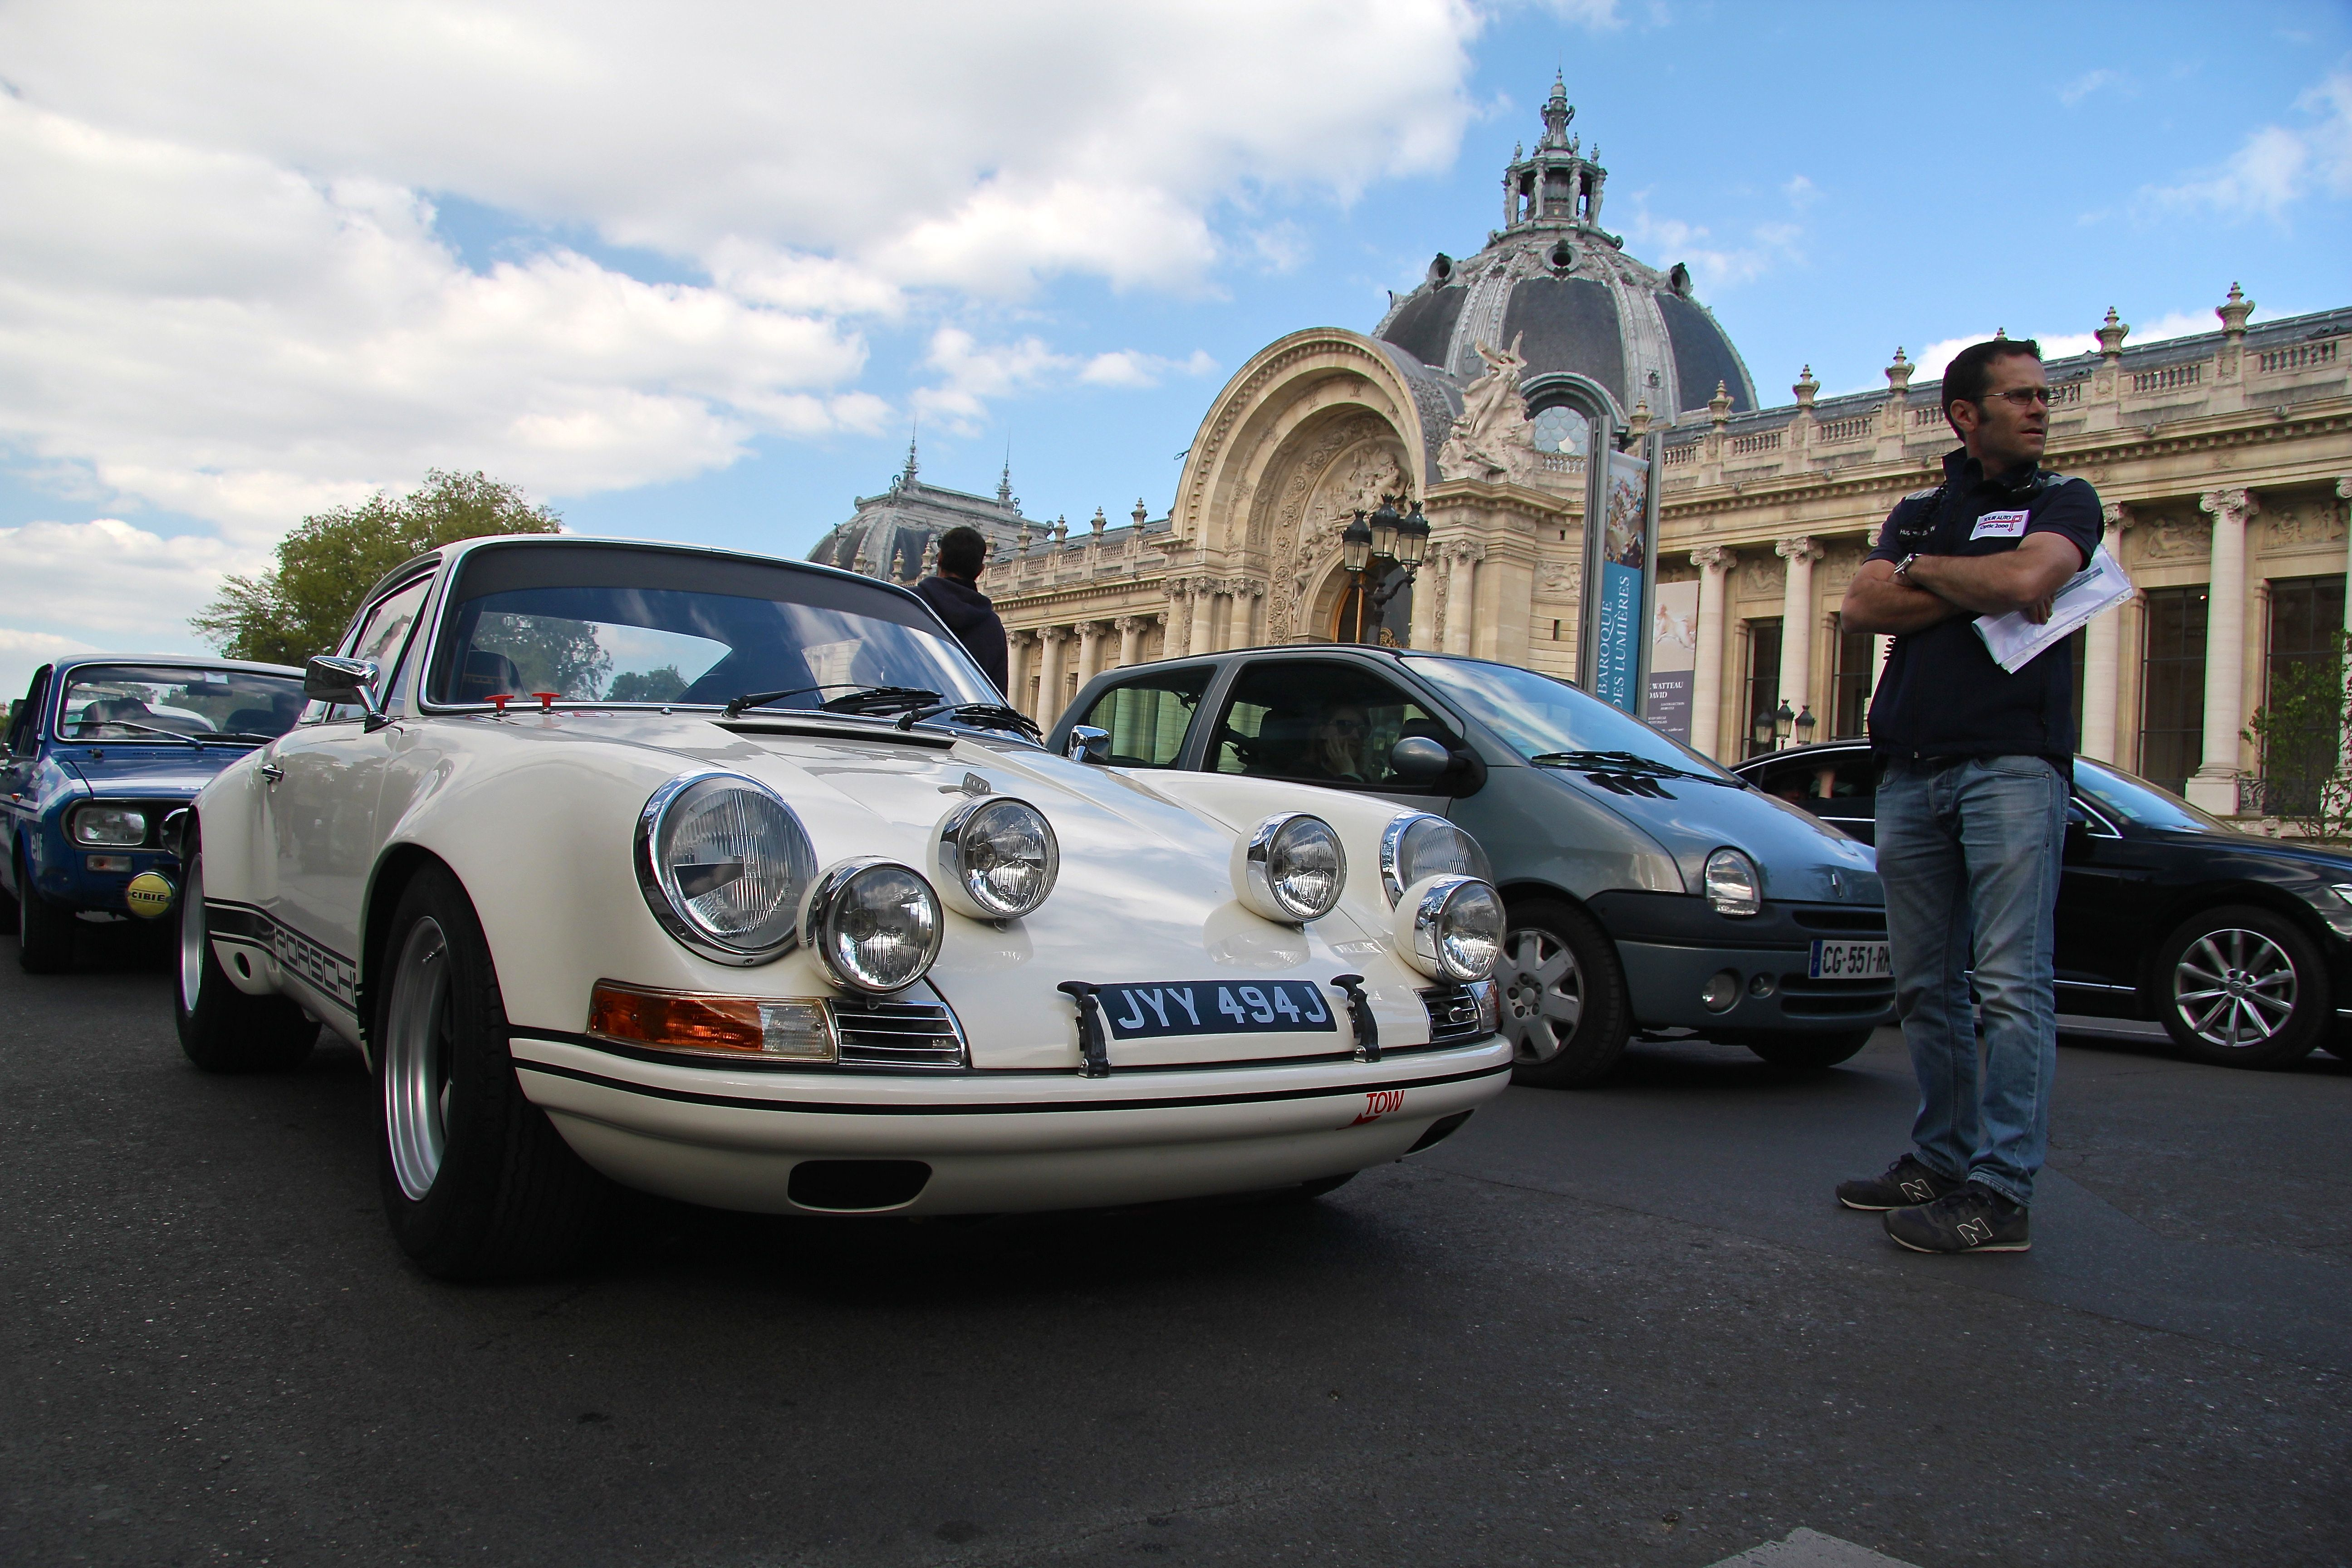 Porsche classic - Paris - Tour Auto 2017 - photo Ludo Ferrari